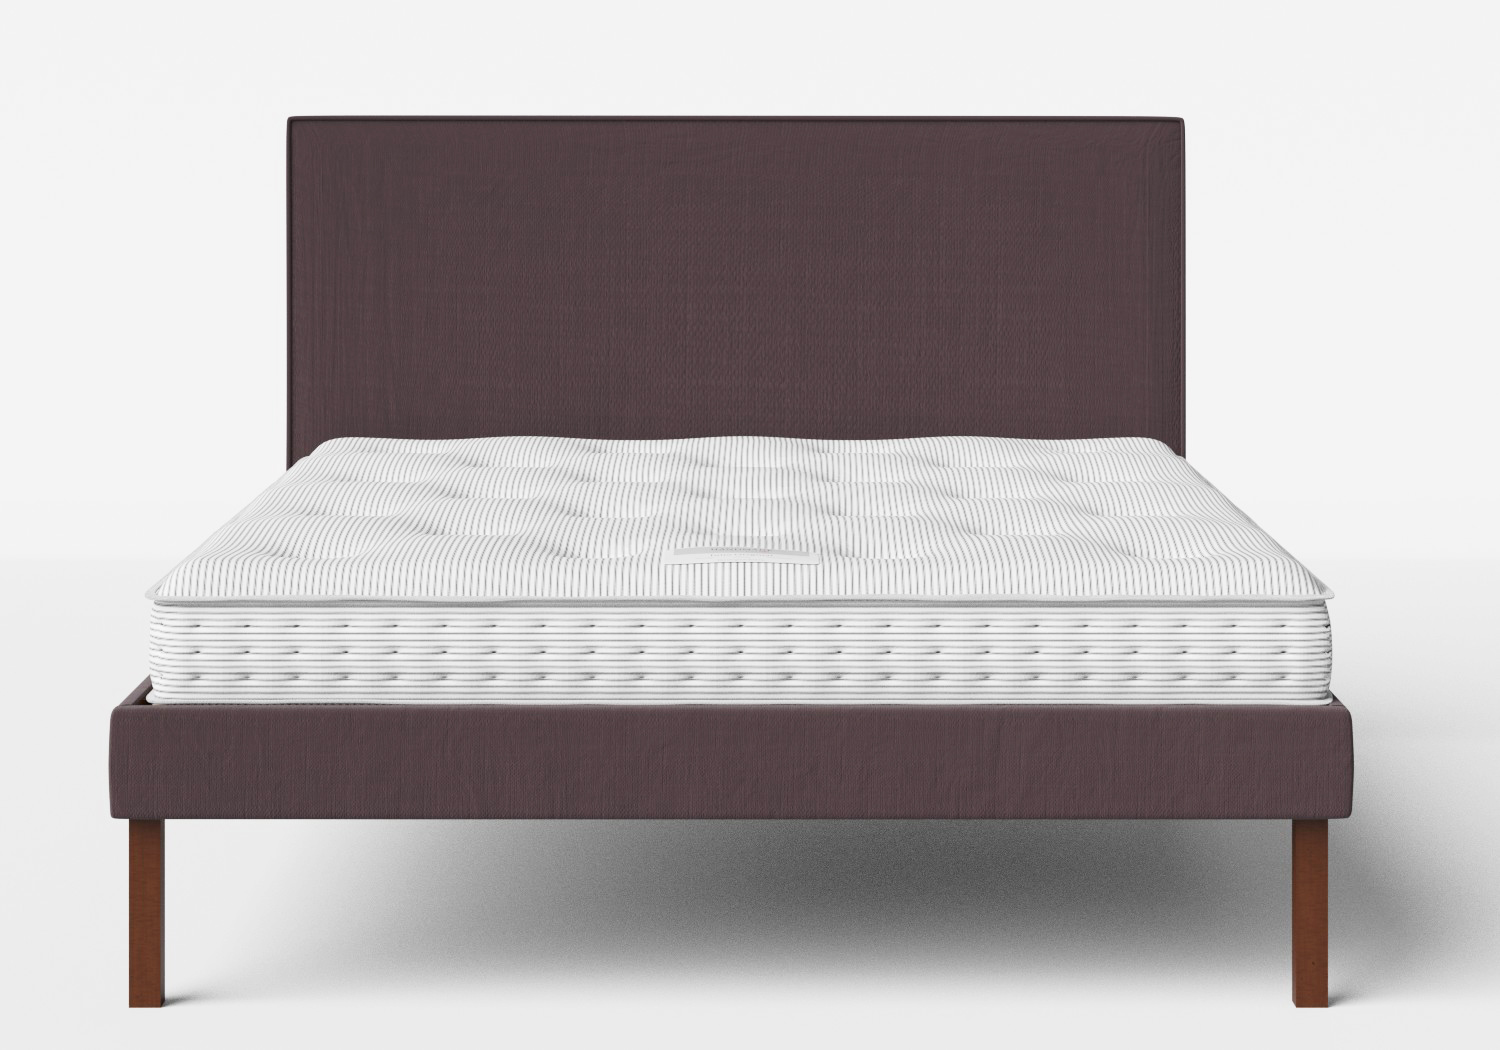 Misaki Upholstered Bed in Aubergine fabric with piping shown with Juno 1 mattress